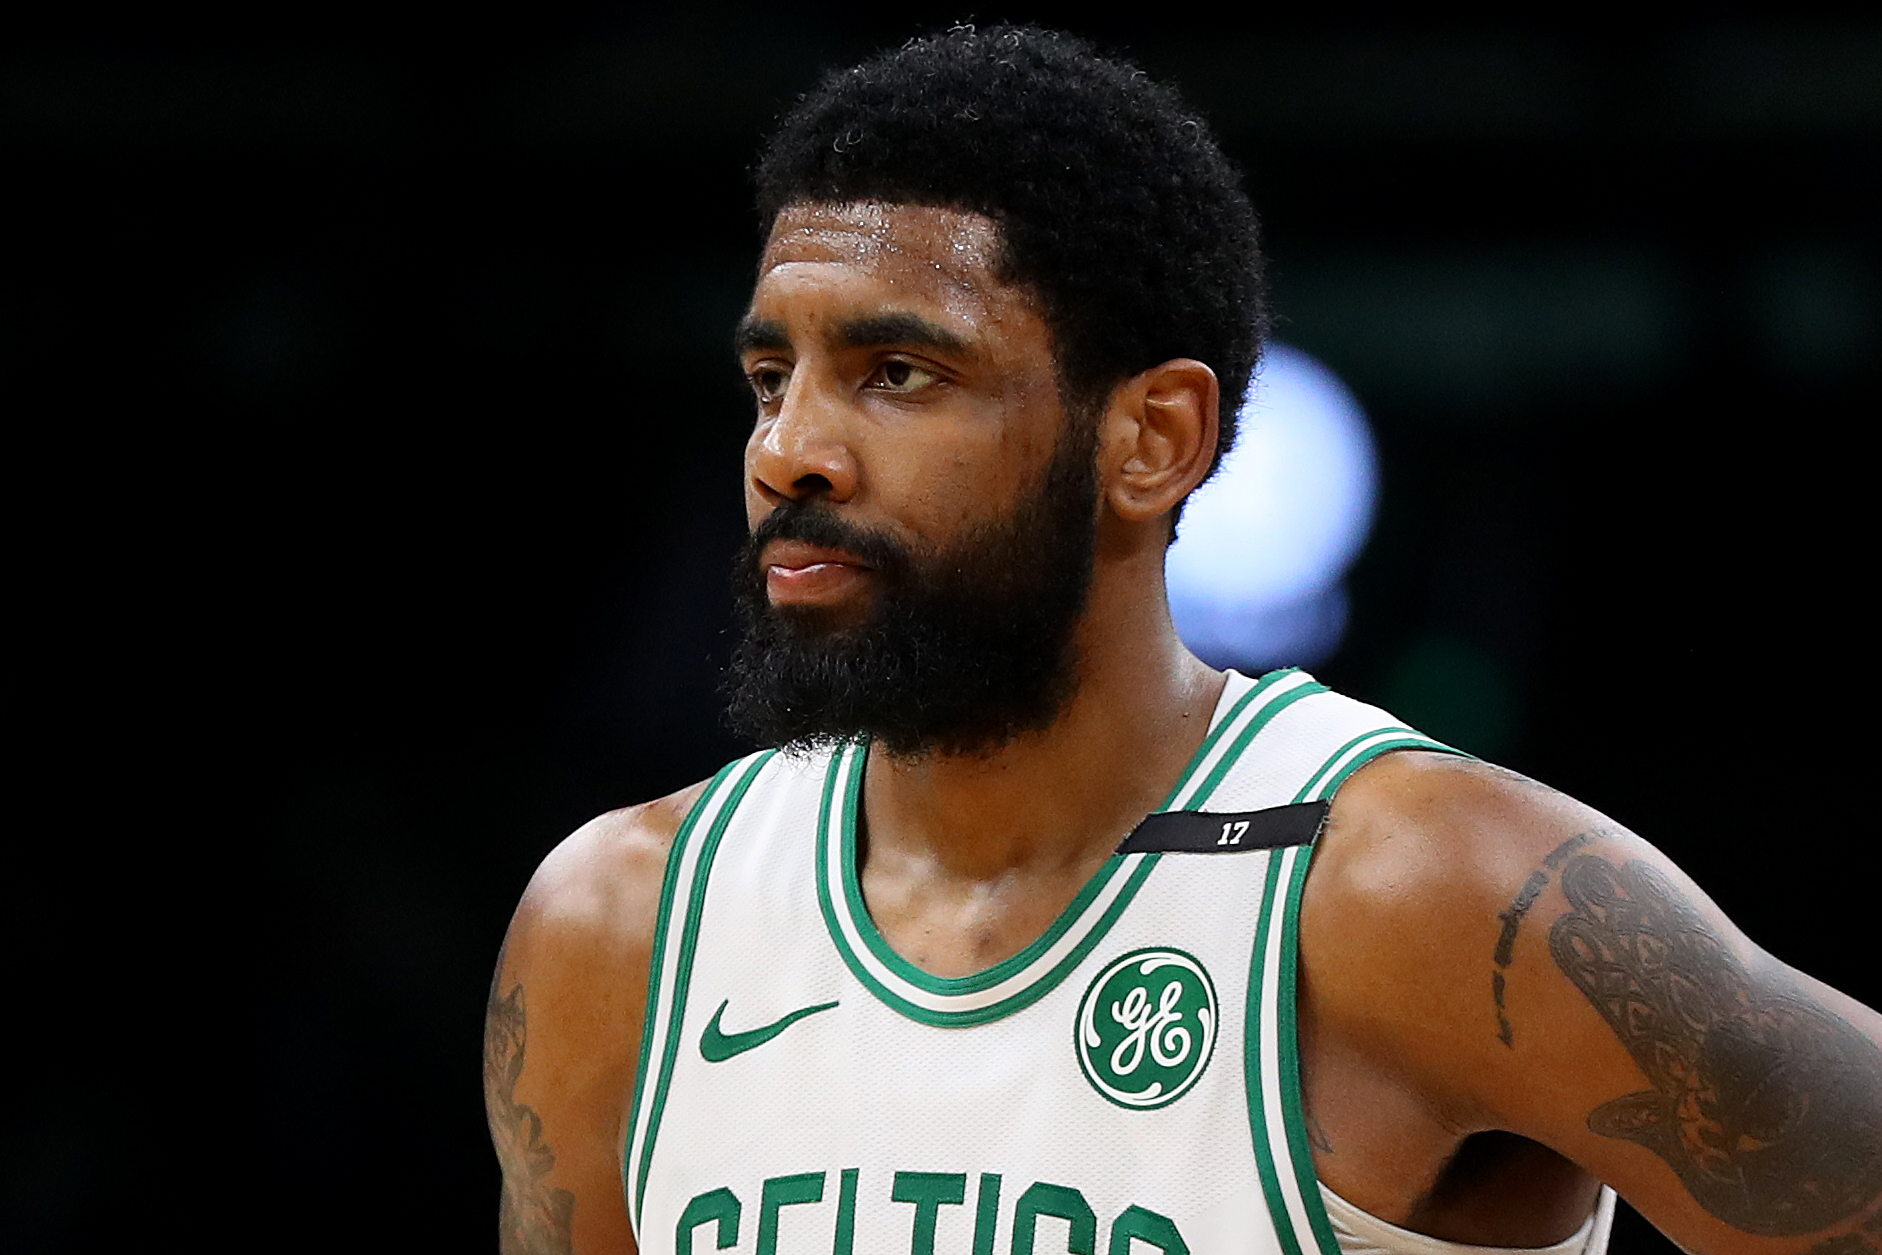 Kyrie Irving drops agent, plans to sign with Roc Nation